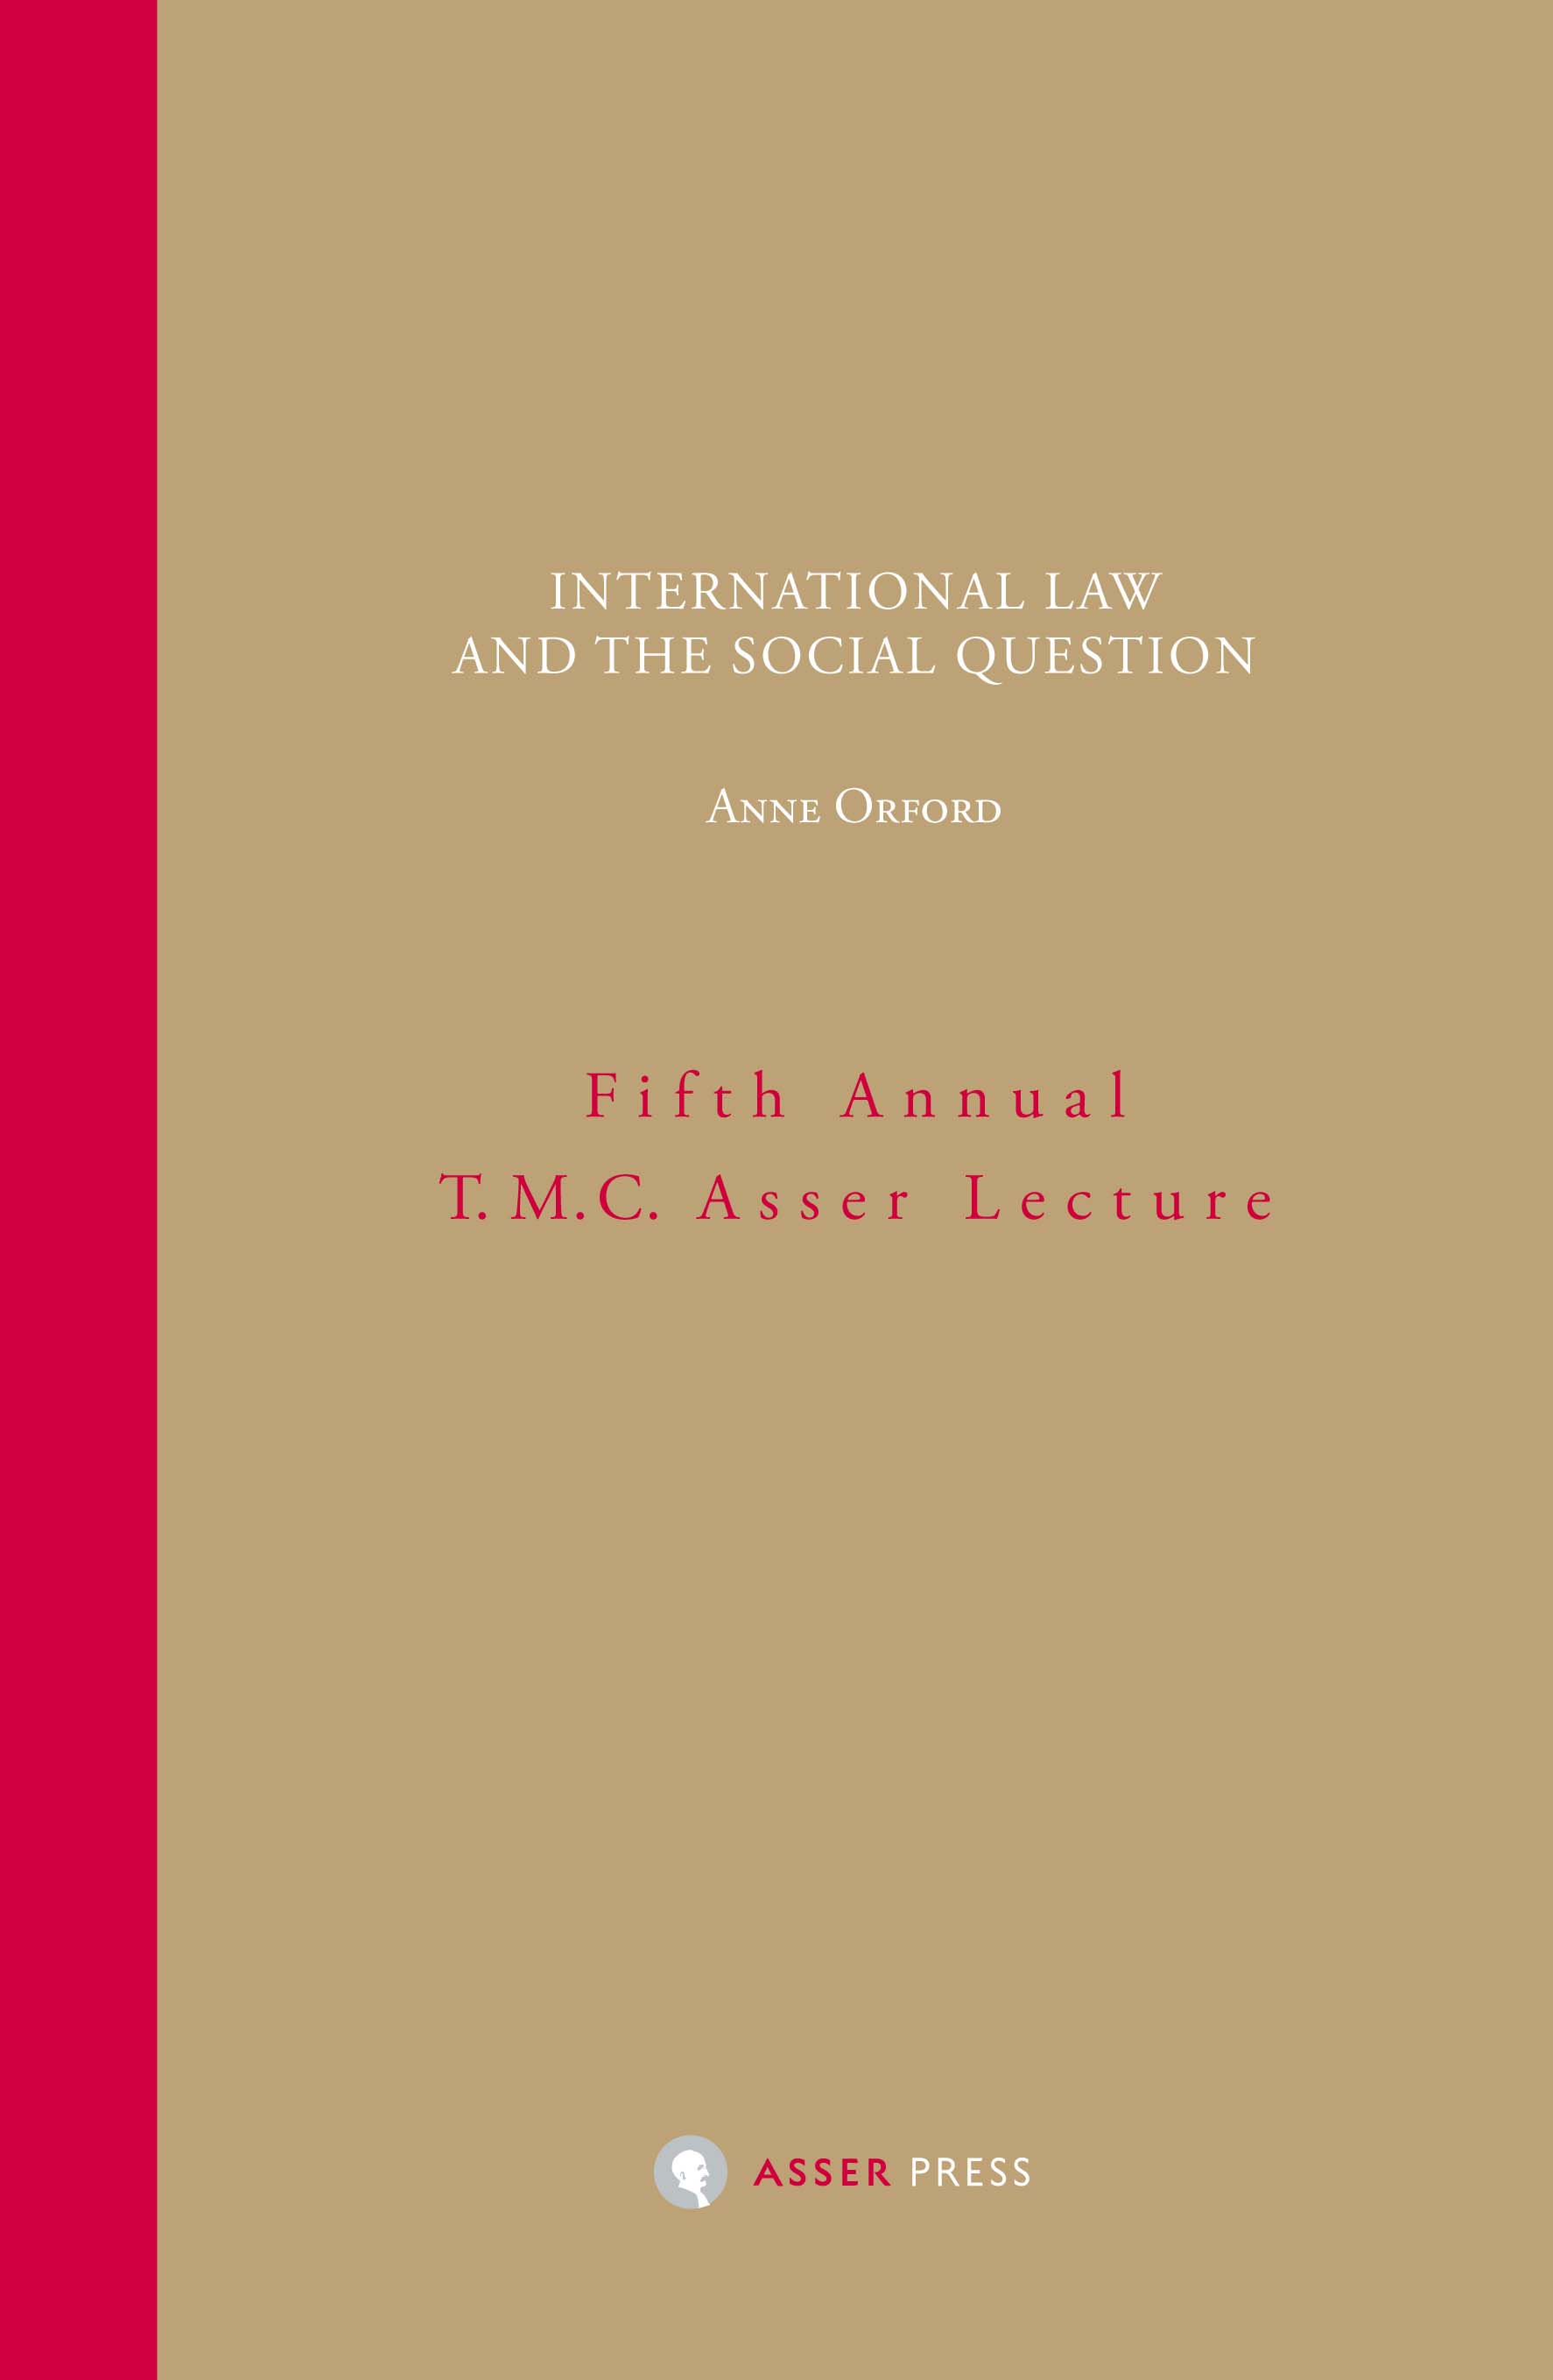 International Law and the Social Question - Fifth Annual T.M.C. Asser Lecture